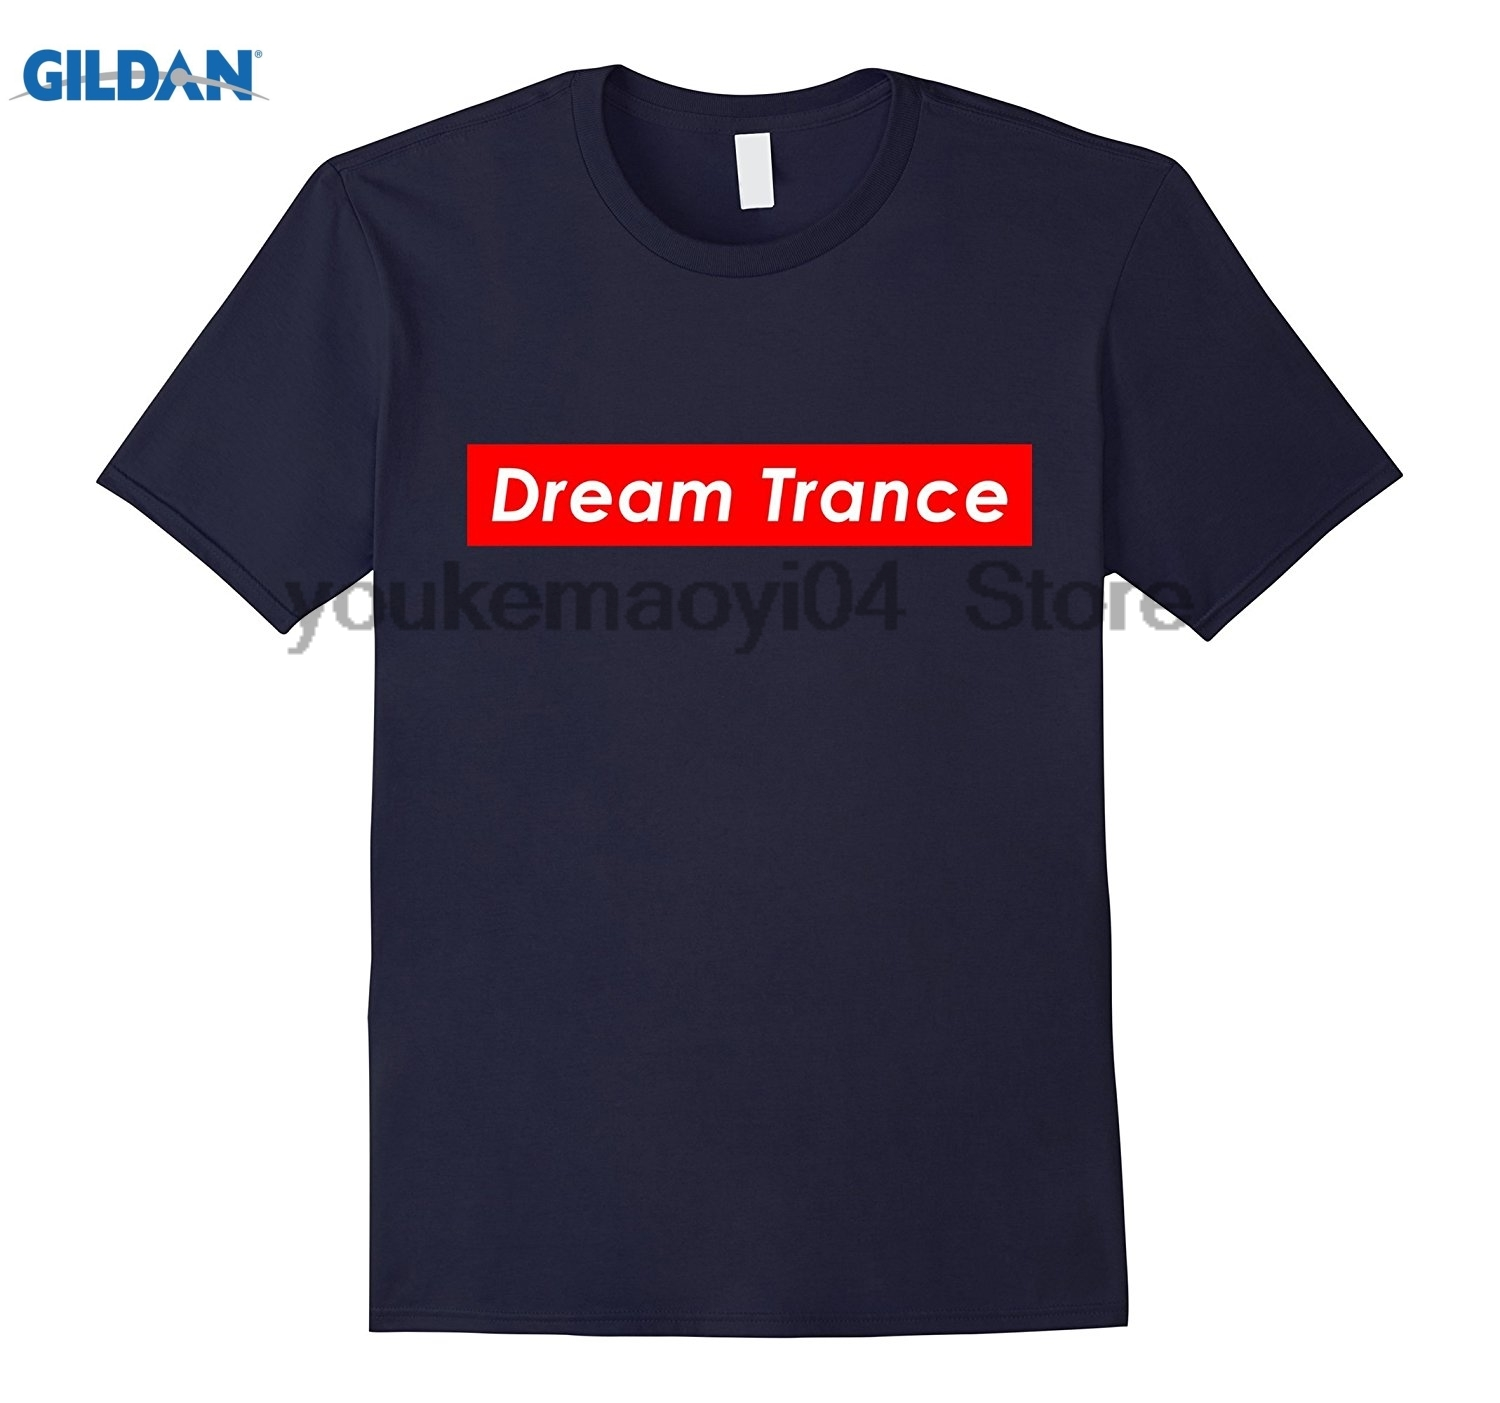 GILDAN Dream Trance EDM Genre Electronic Dance Music Festival Shirt The latest funny carnival music T-shirt